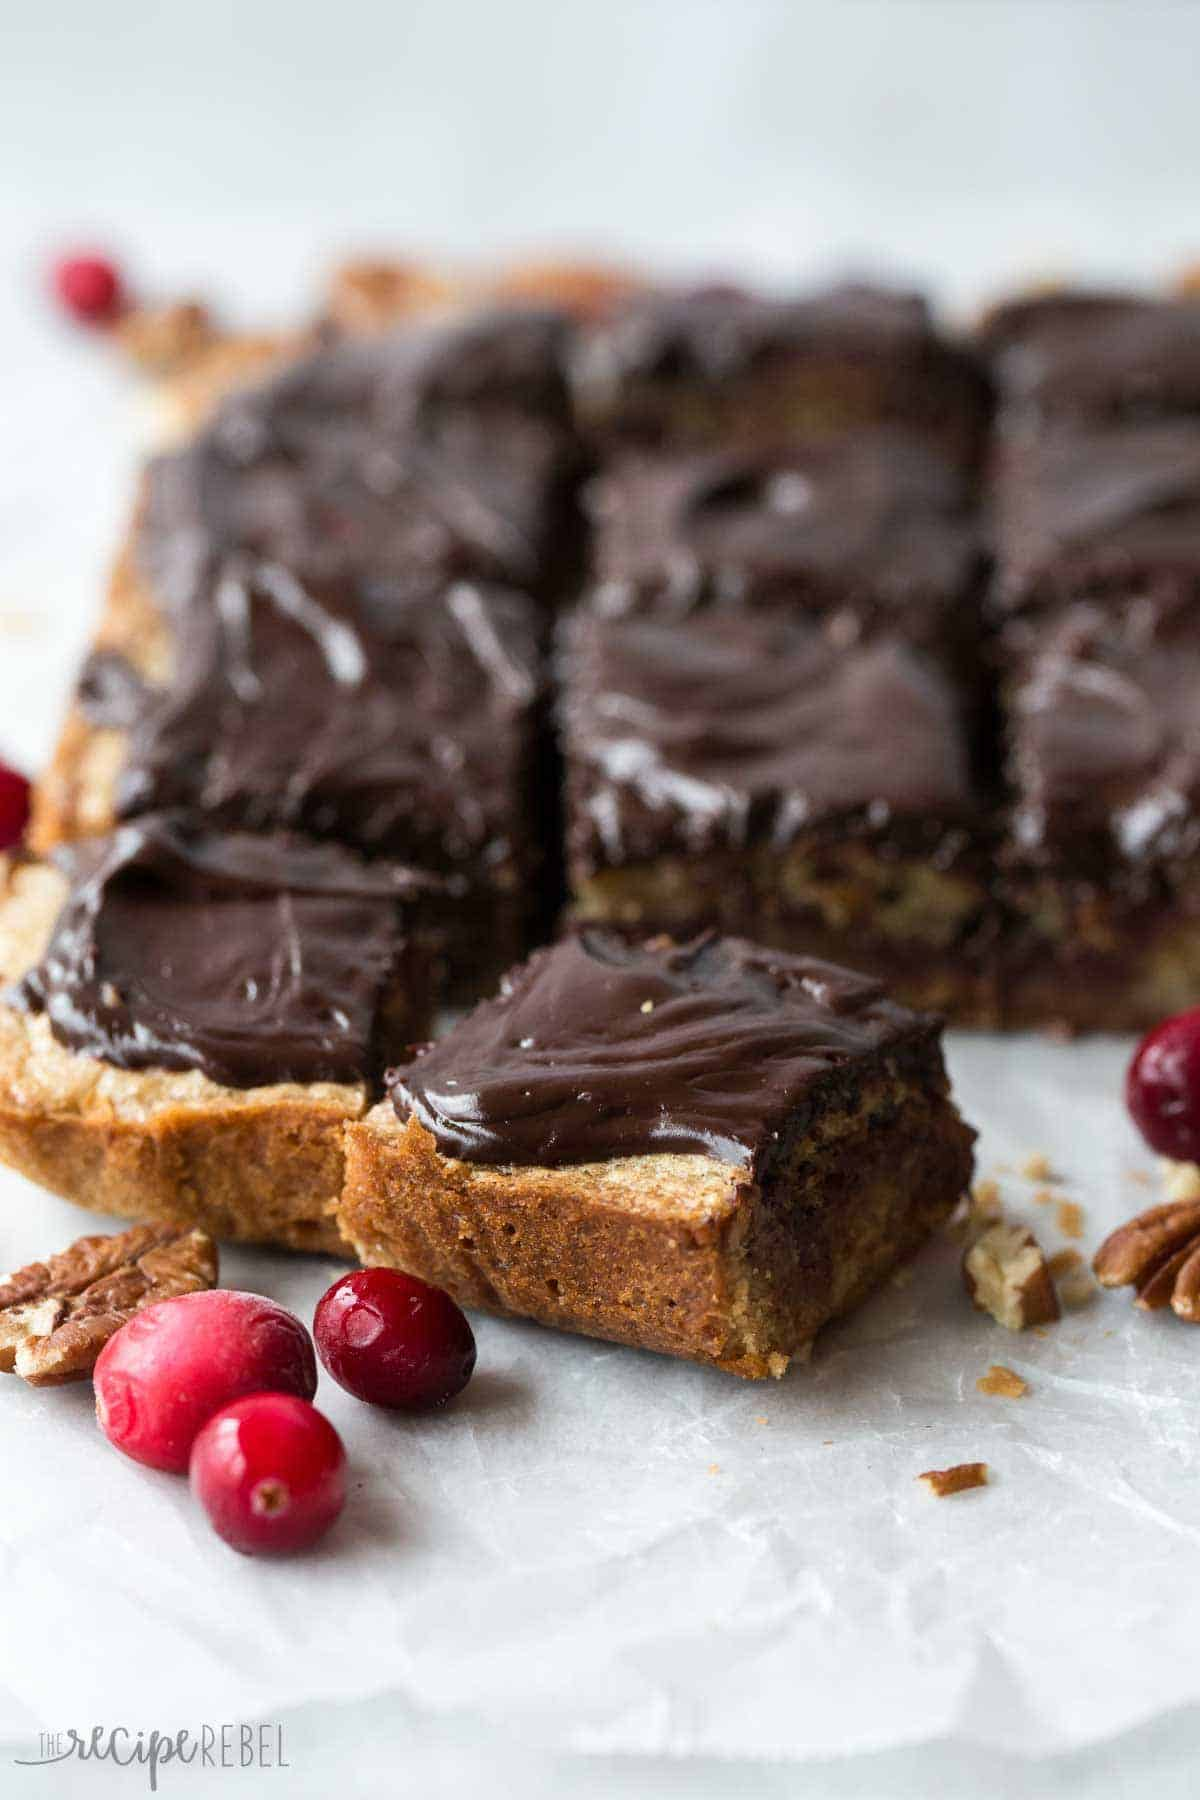 ... chocolate ganache -- These Cranberry Chocolate Chunk Blondies are the